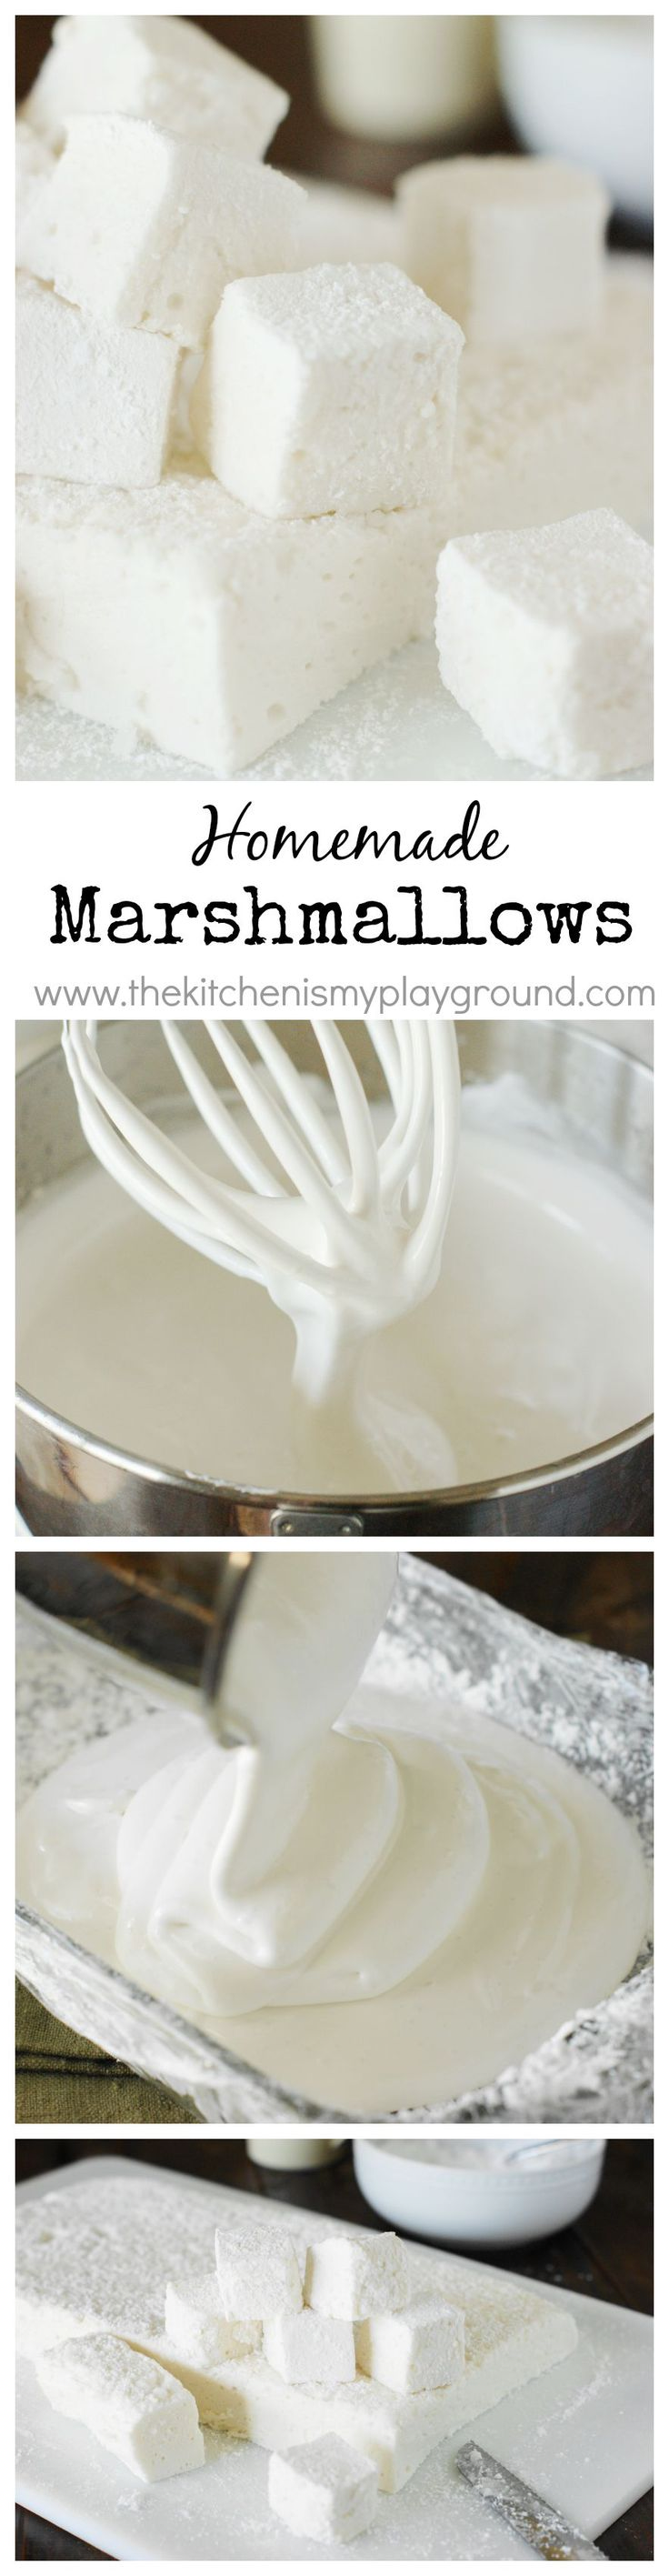 How to Make Homemade Marshmallows ~ they're TOTALLY worth the homemade time & effort! #marshmallows #homemademarshmallows   www.thekitchenismyplayground.com